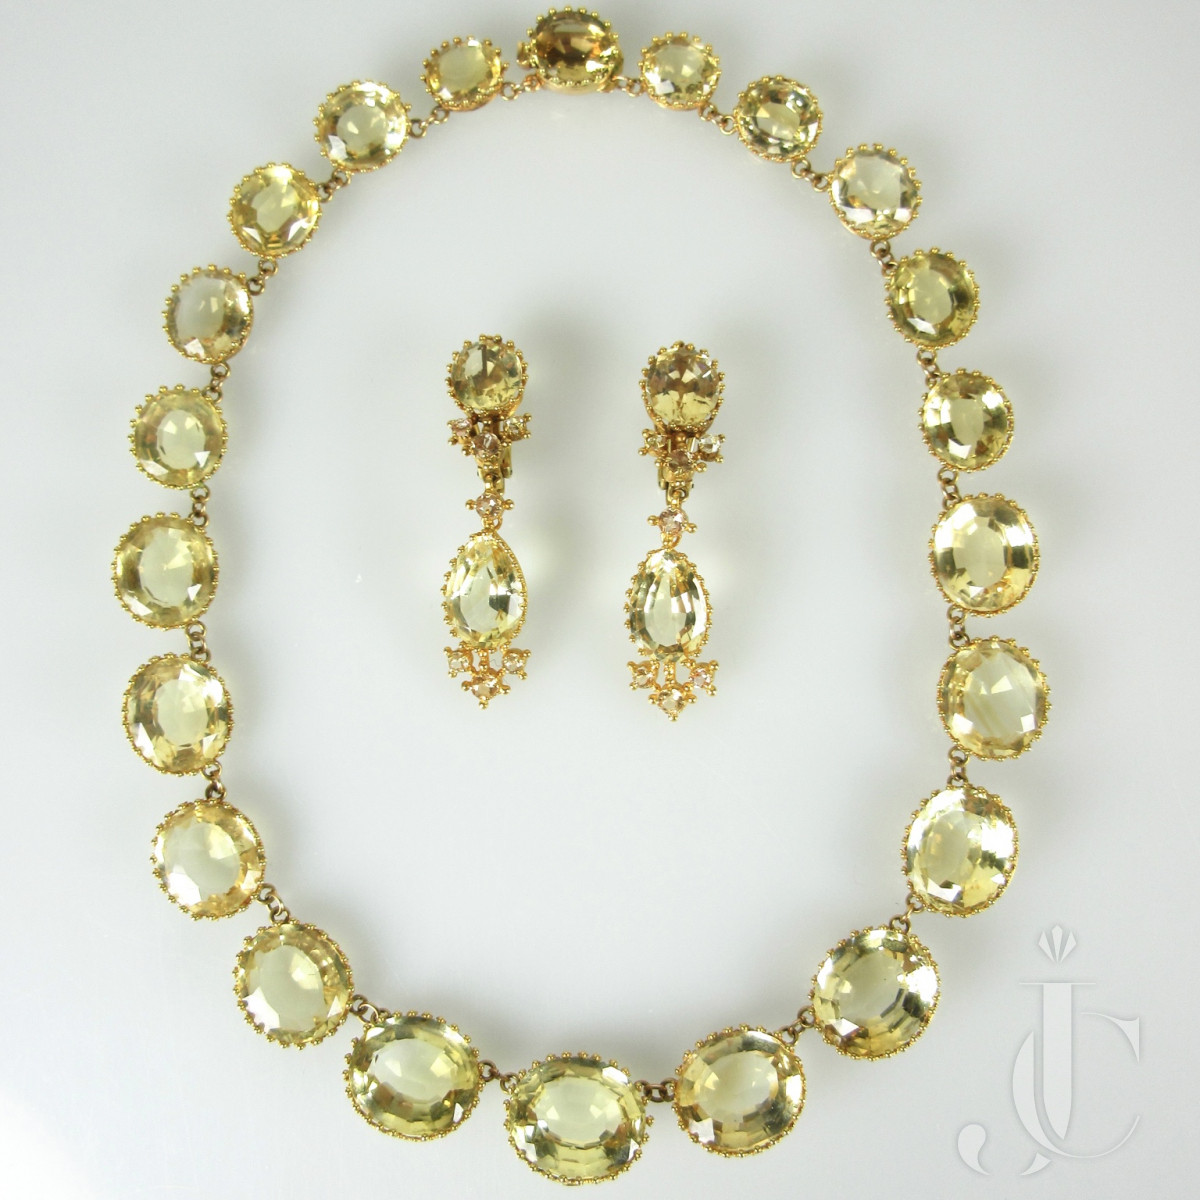 French Citrine Necklace and Earrings